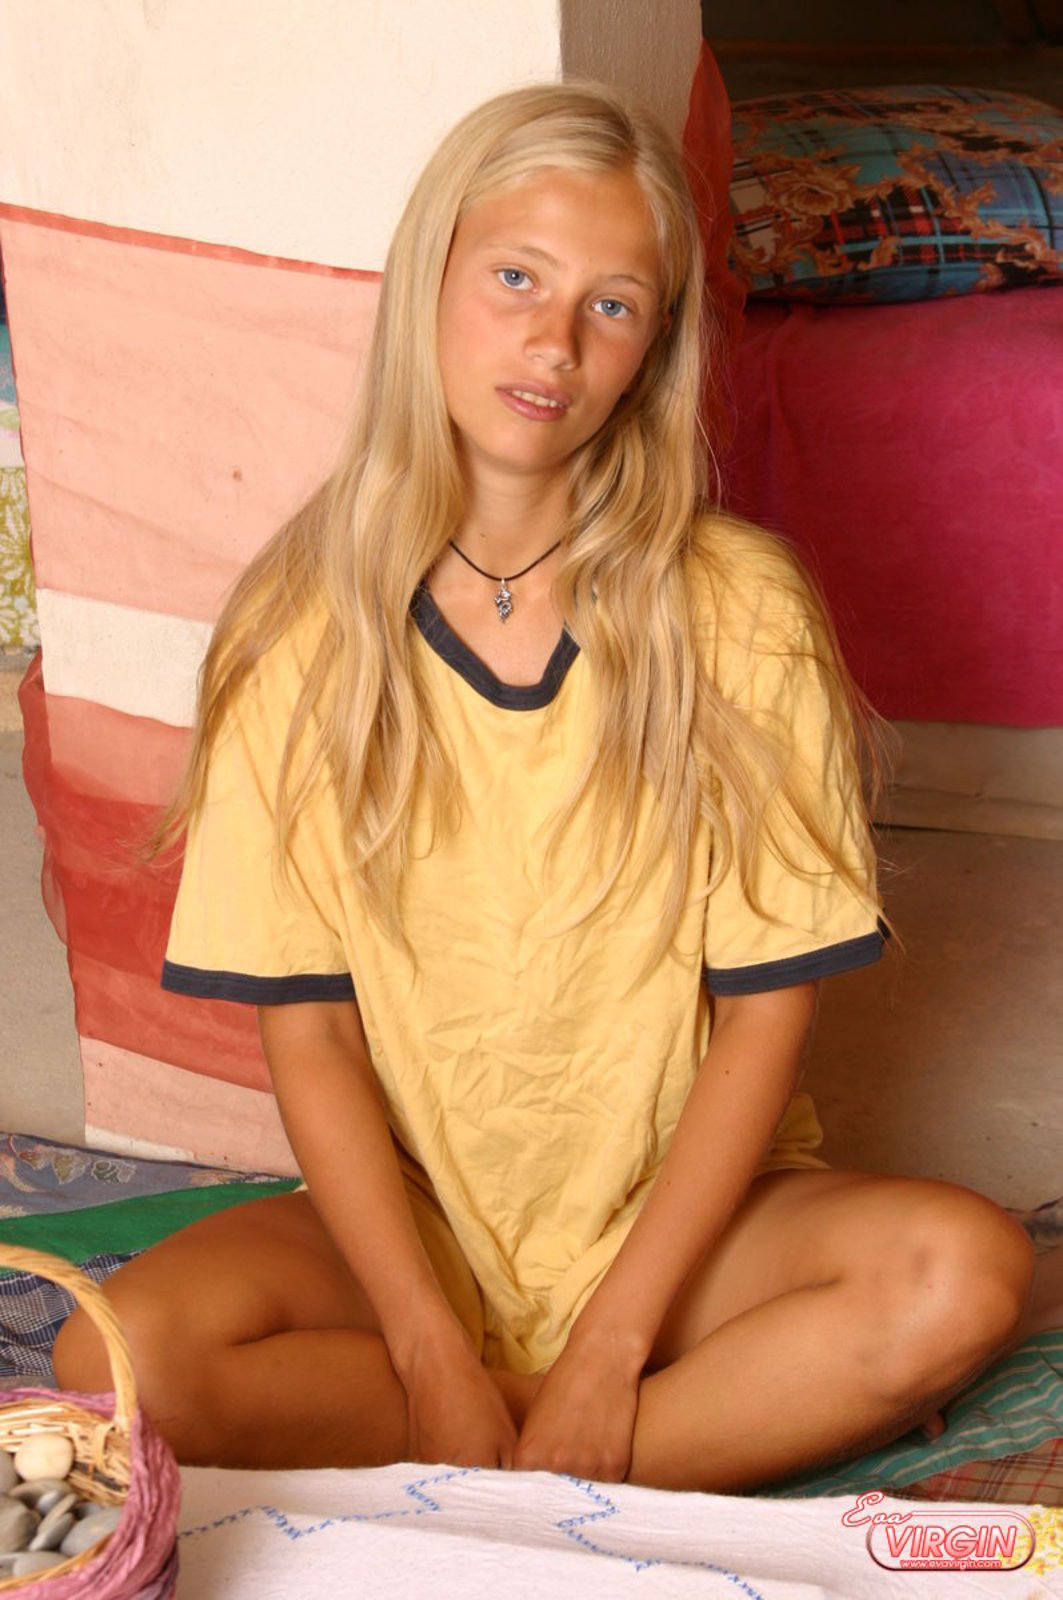 Free online chat adult #1